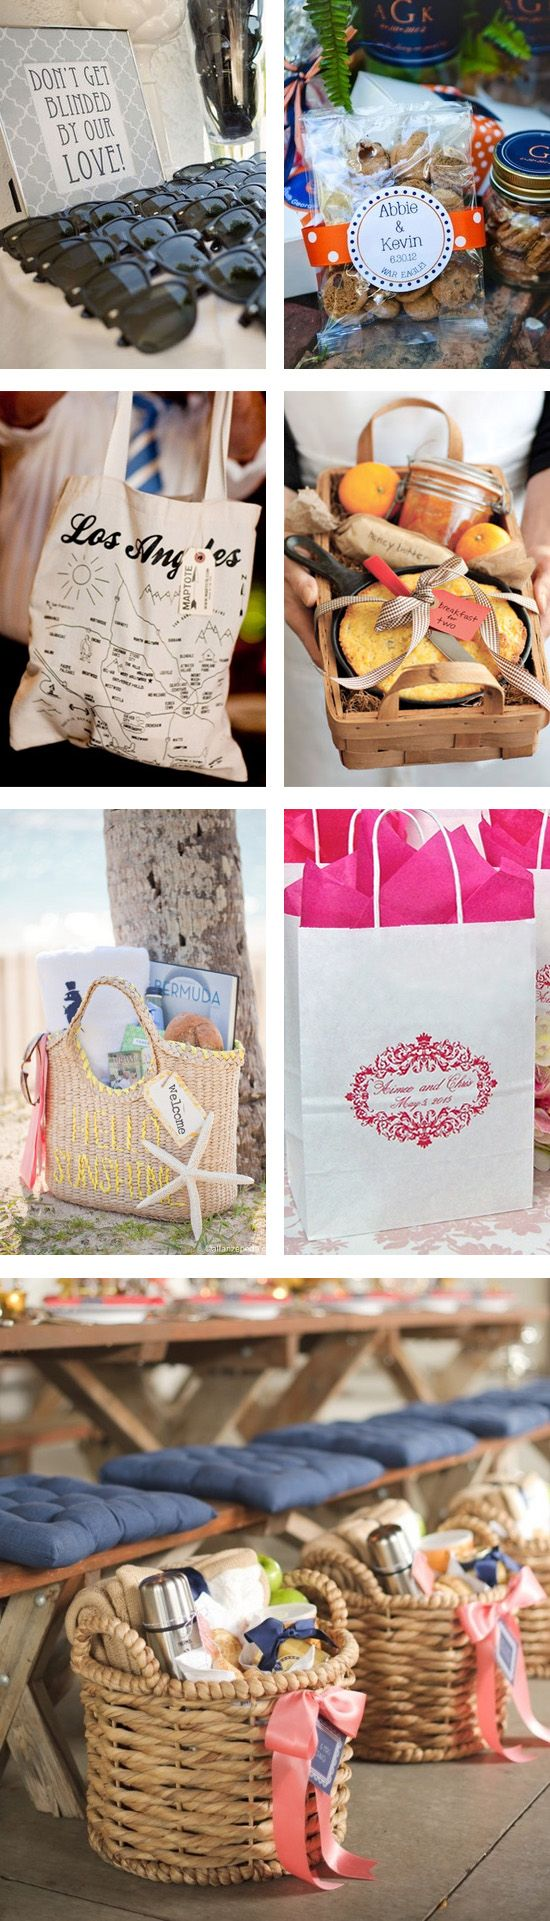 Ideas Destination Wedding Gift Bag Ideas inspiration for your wedding ...